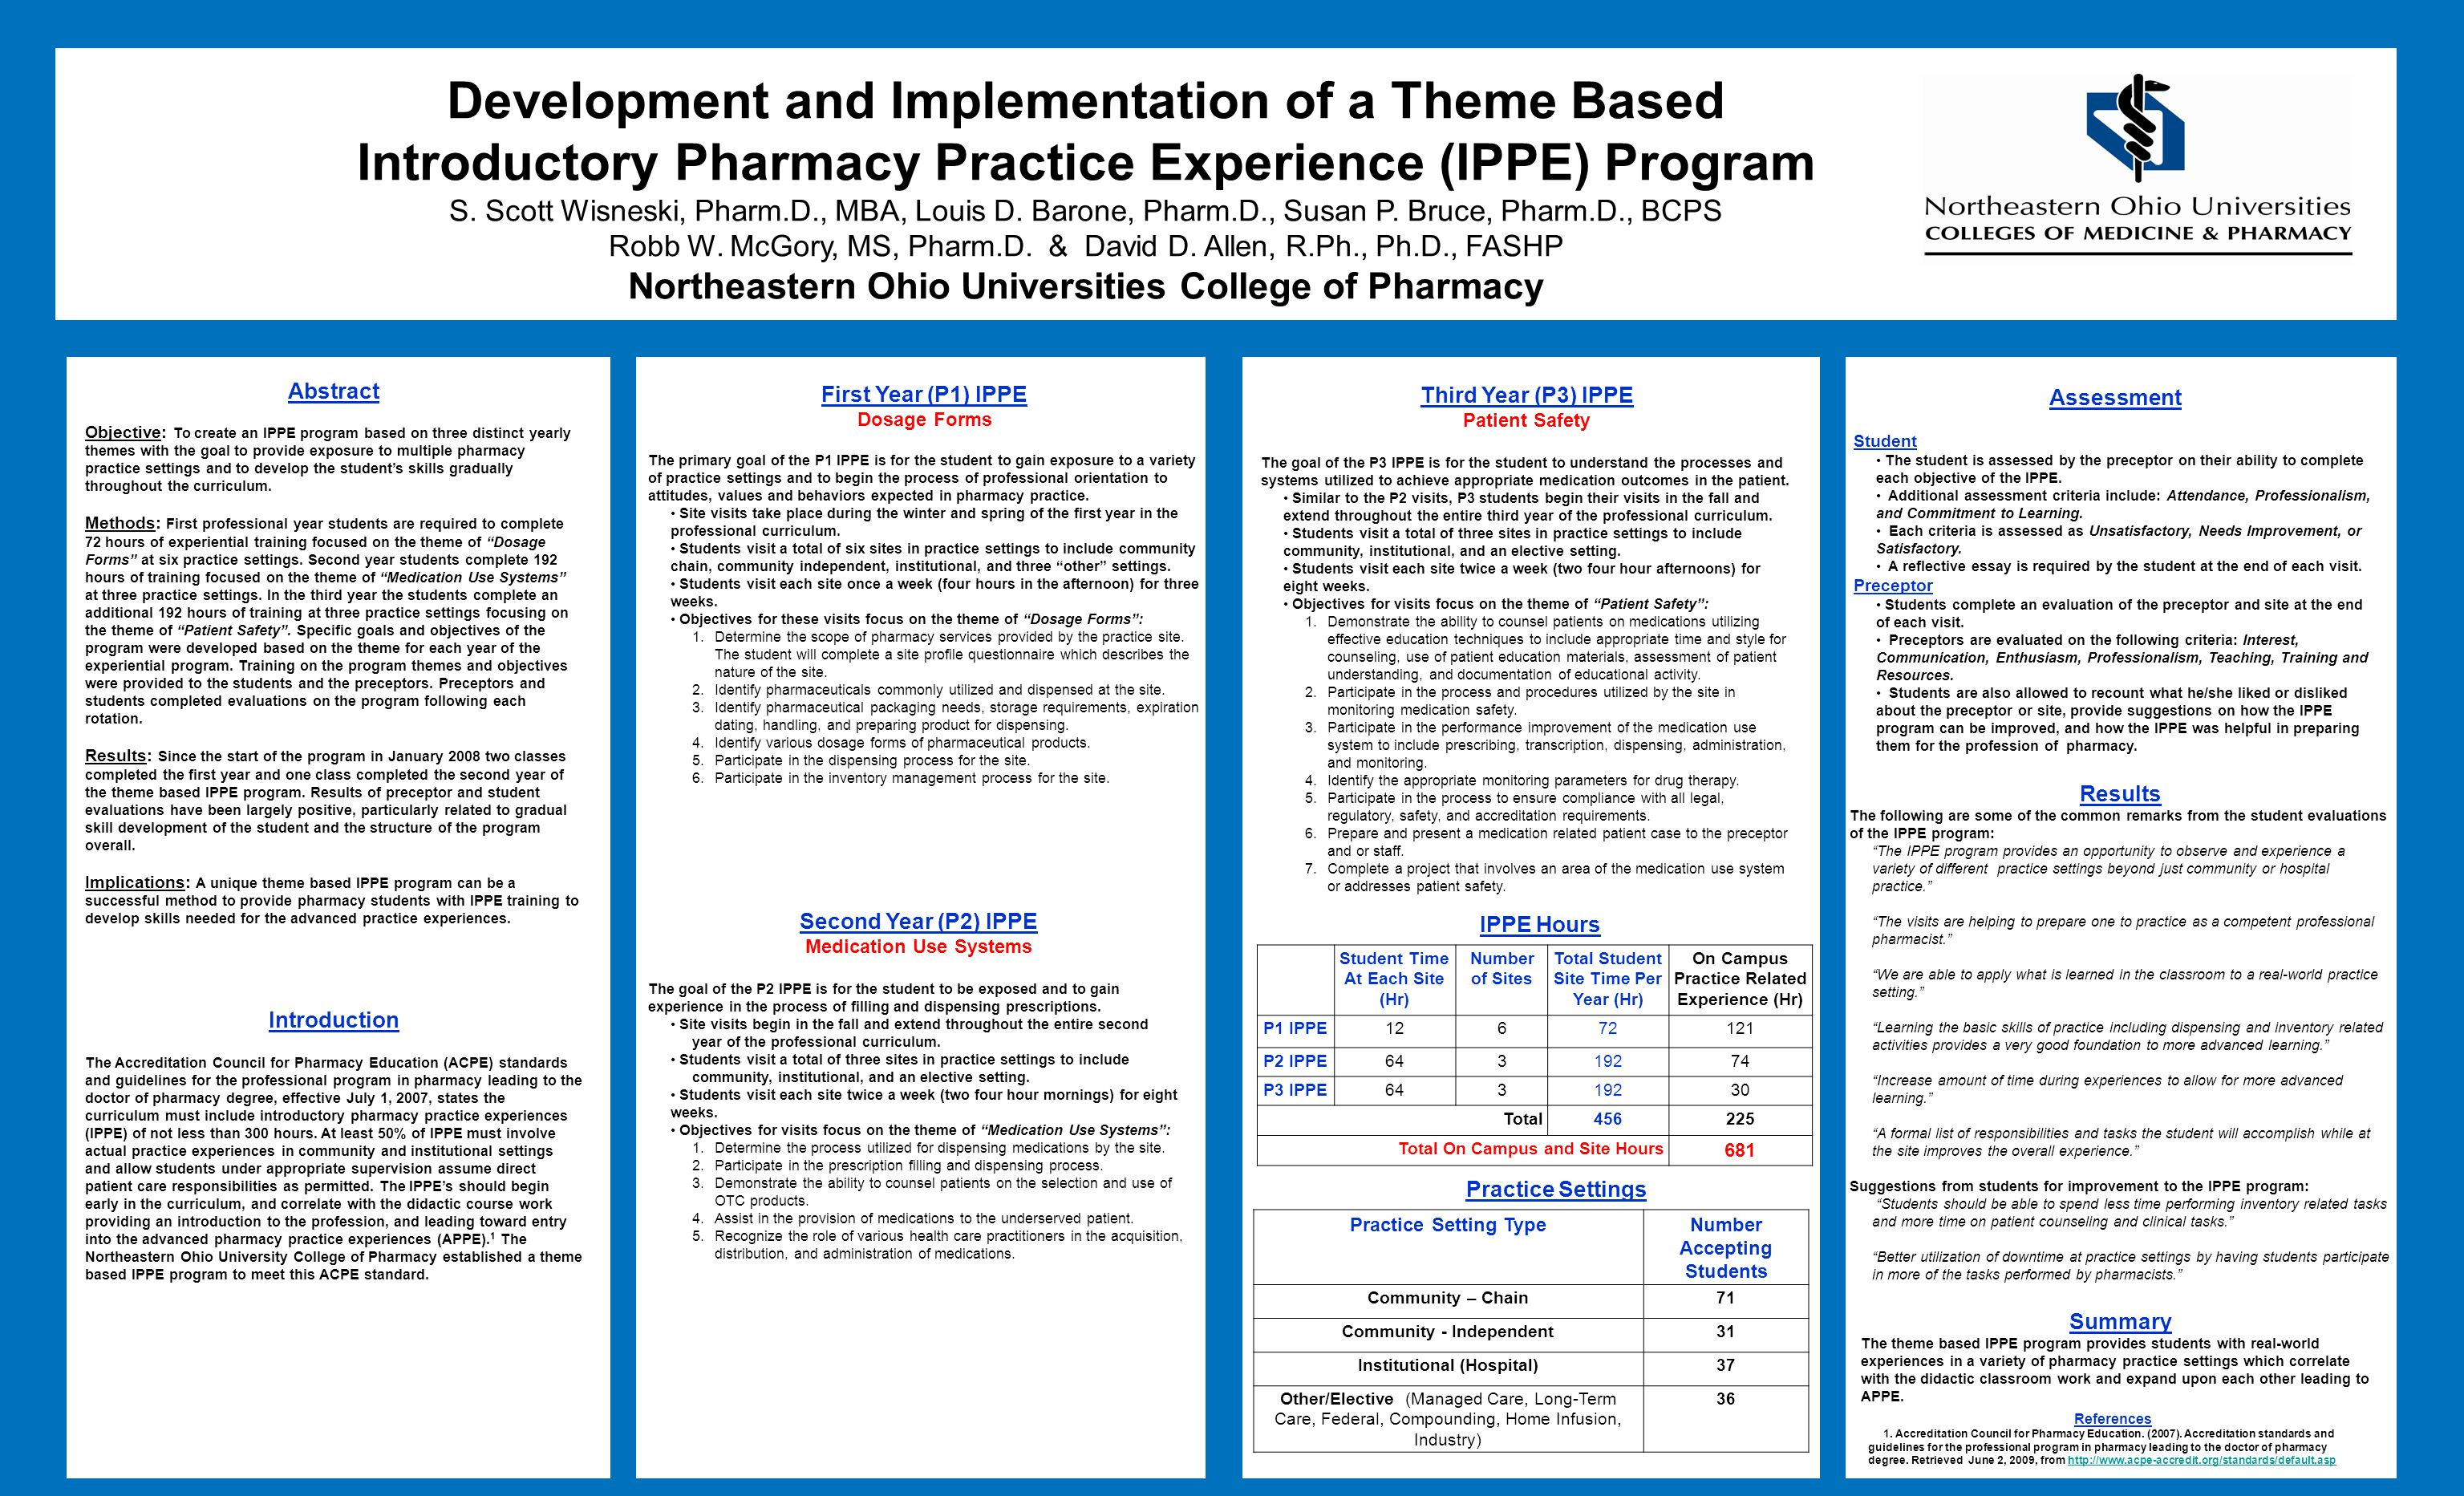 Development and Implementation of a Theme Based Introductory Pharmacy Practice Experience (IPPE) Program S.